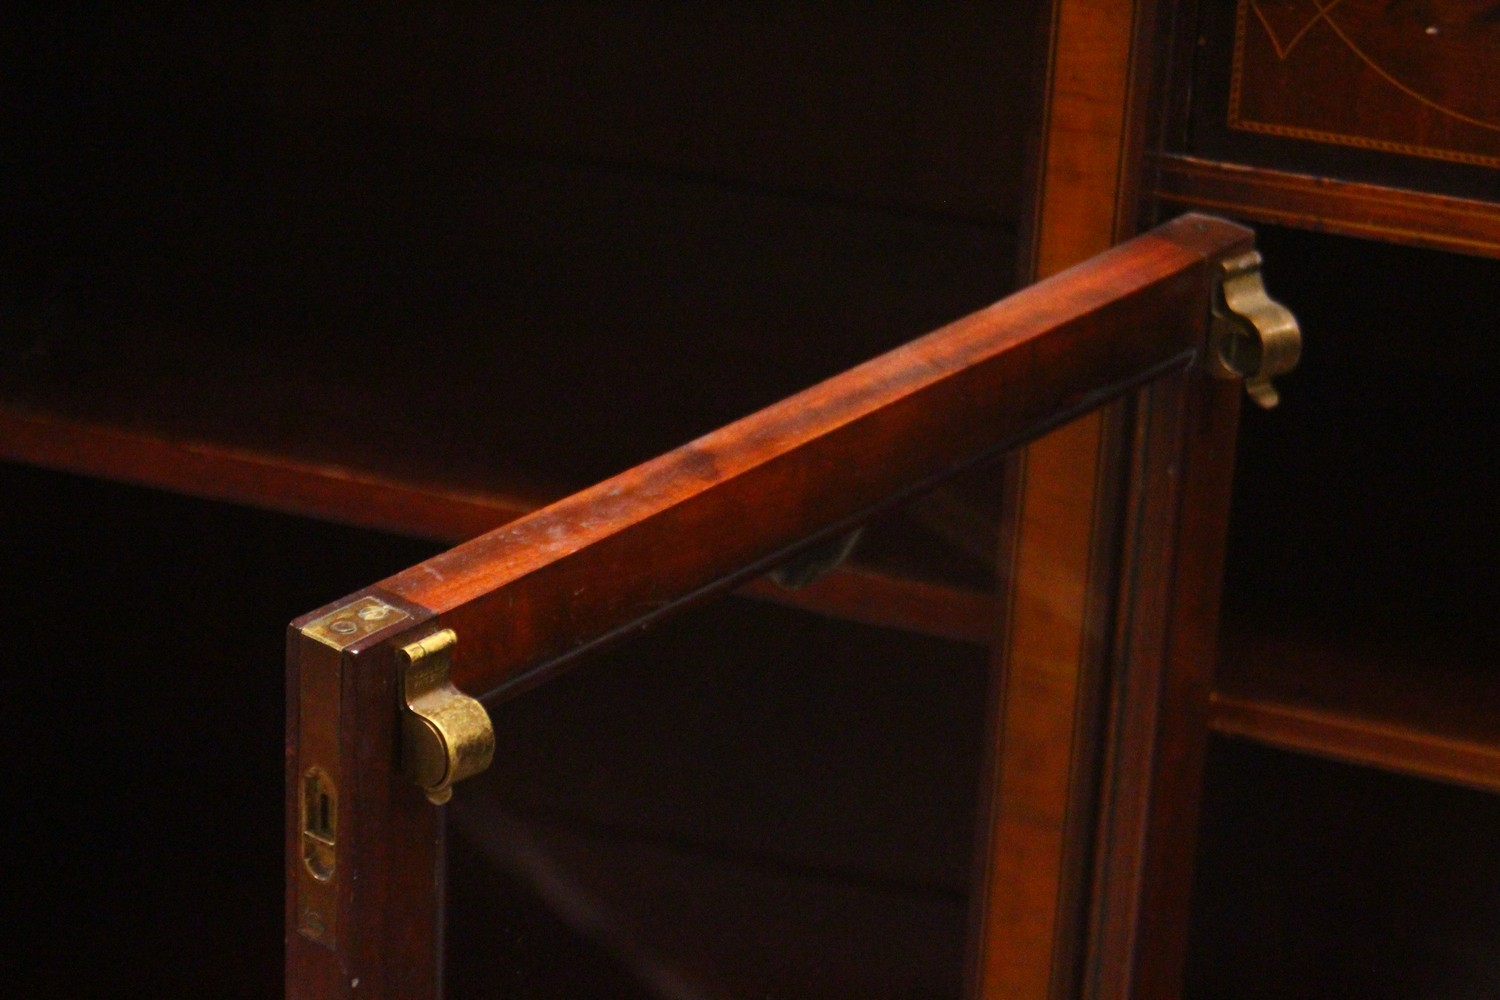 Lot 1018 - A GOOD EDWARDIAN MAHOGANY INLAID STANDING CUPBOARD, with two tier top, central single drawer over